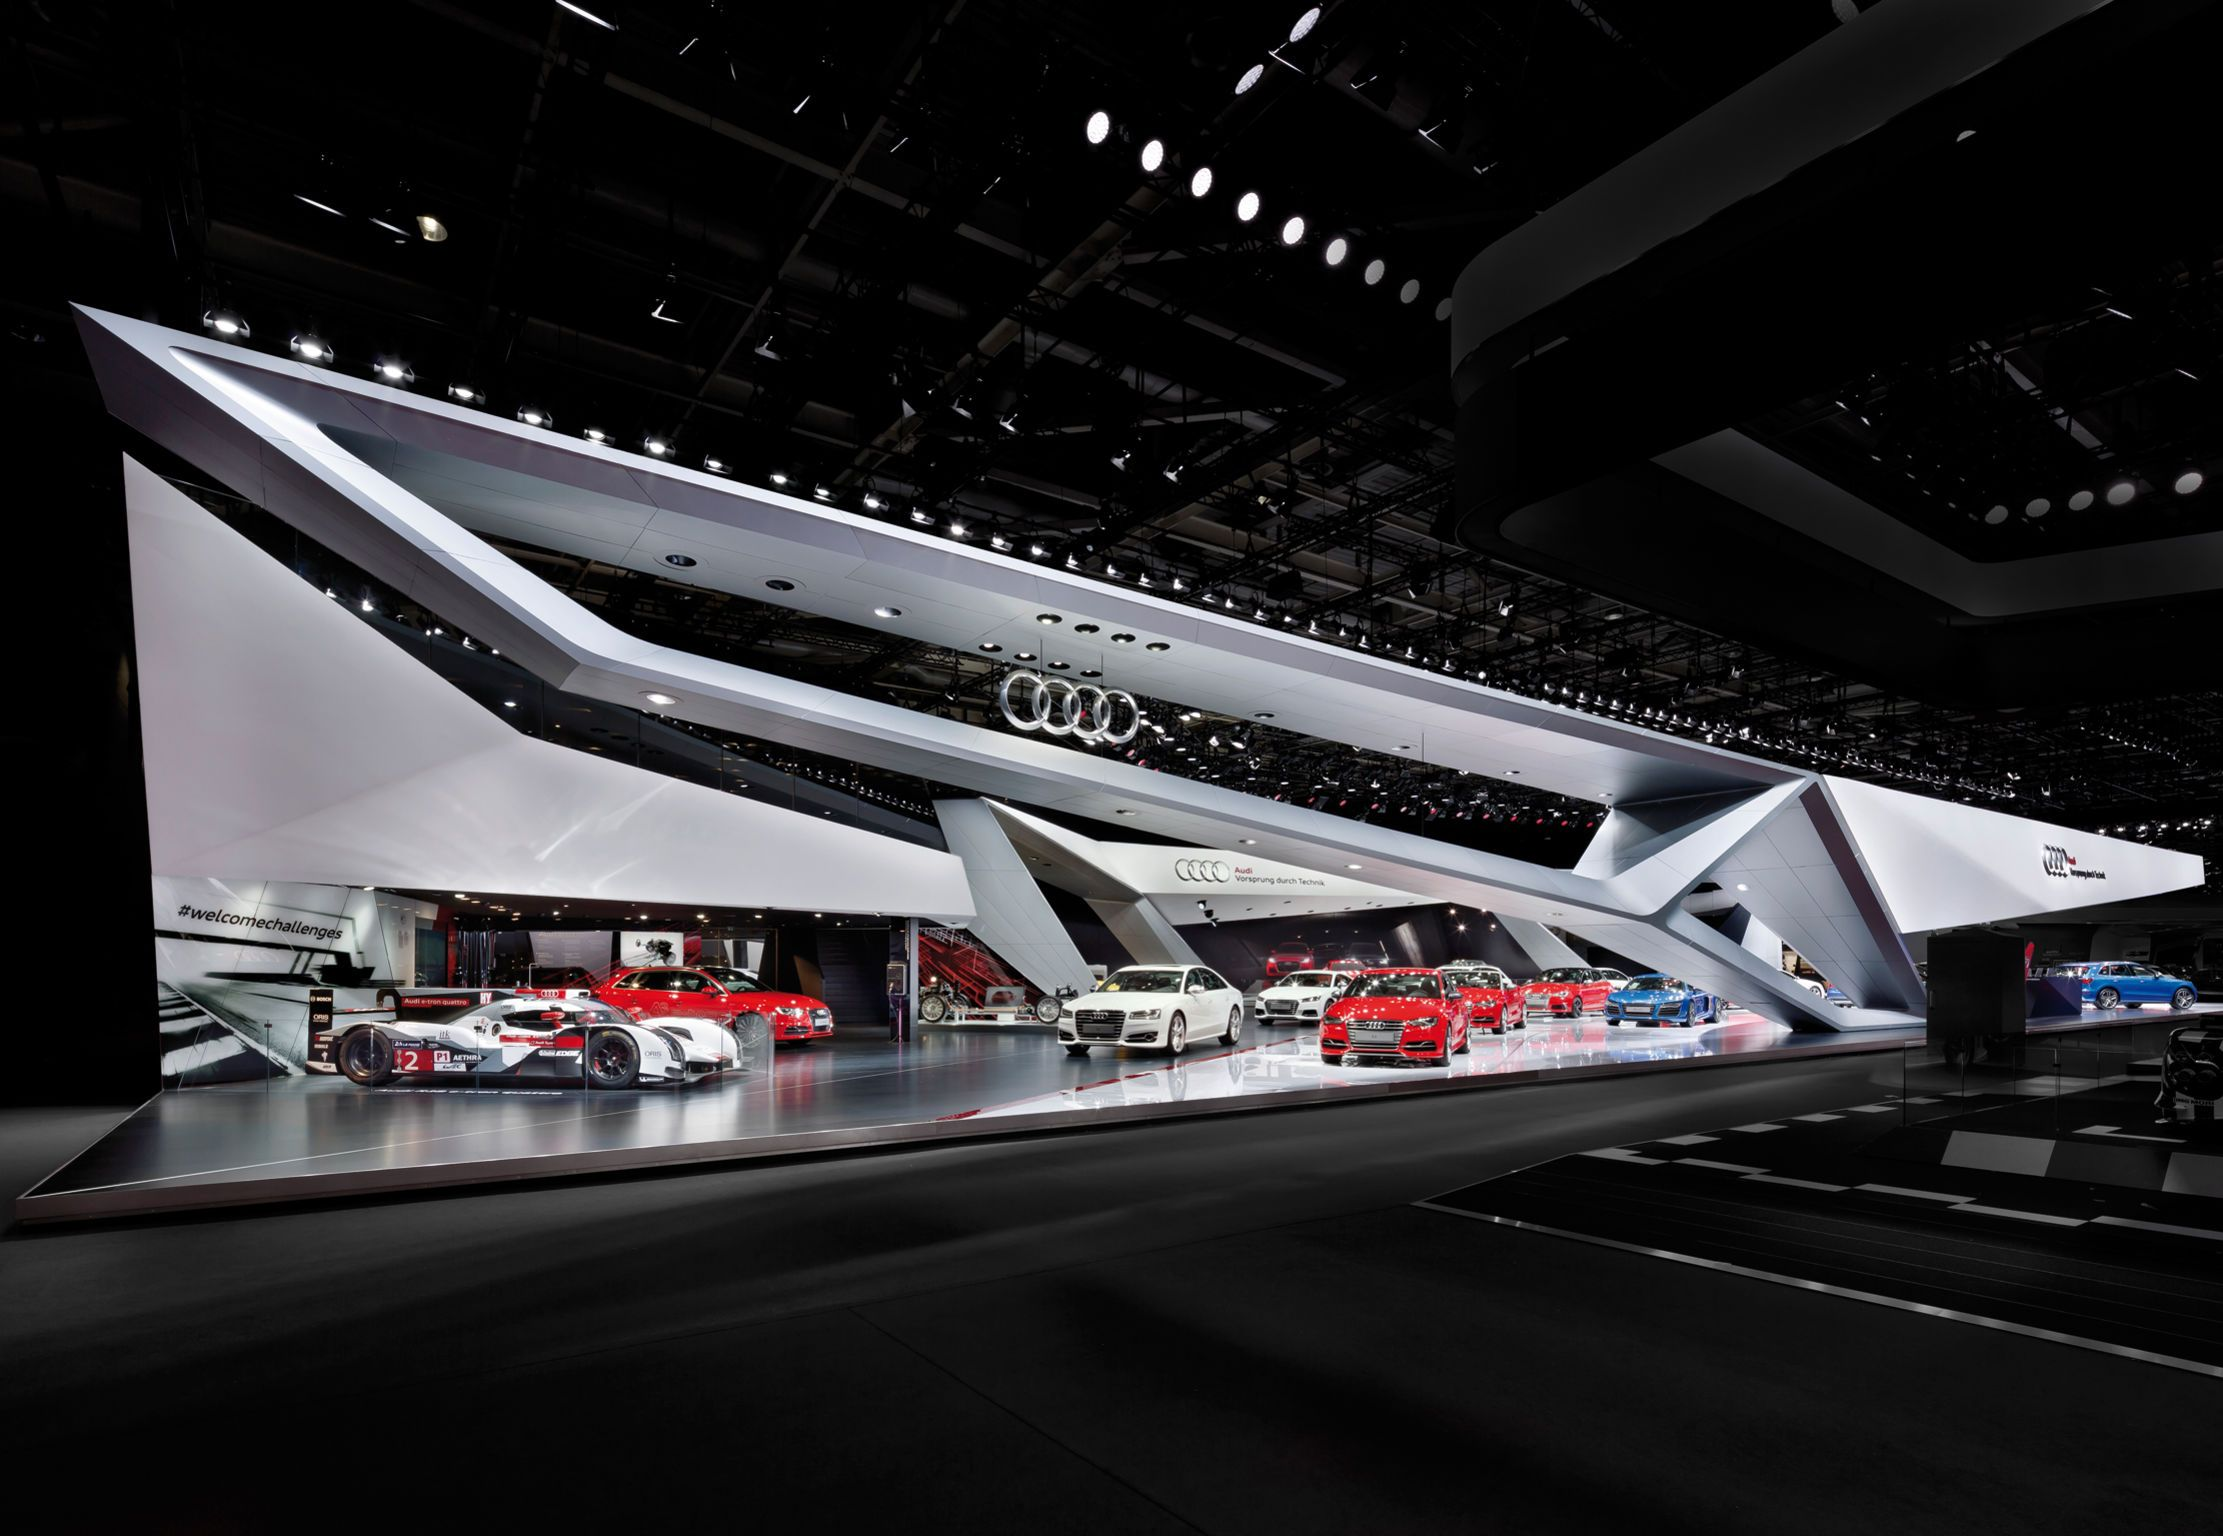 Audi Paris Motor Show 14 Trade Fair Stand